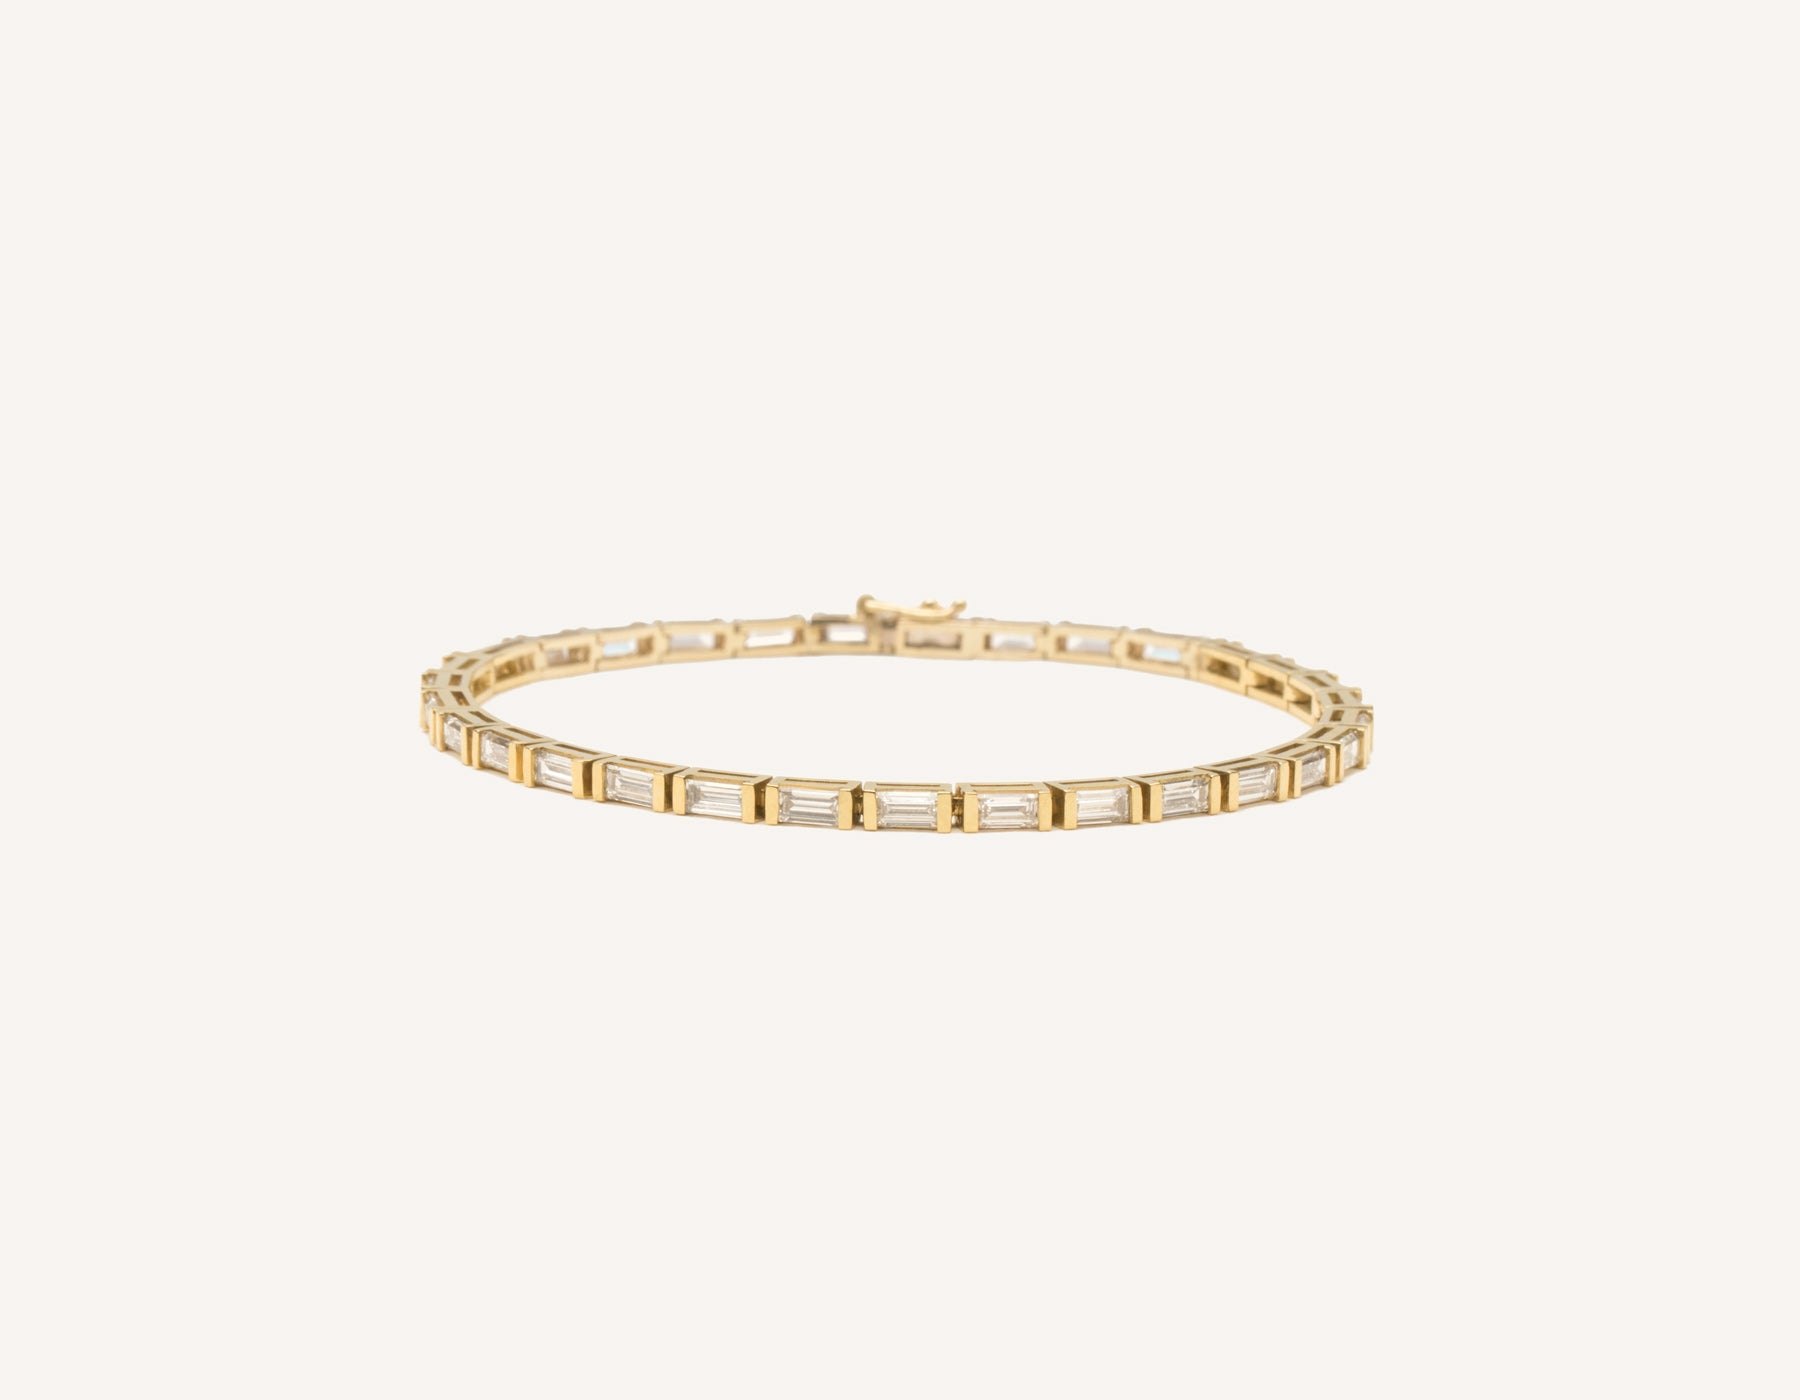 Classic elegant 18k solid gold Baguette Diamond Tennis Bracelet by Vrai and Oro, 18K Yellow Gold